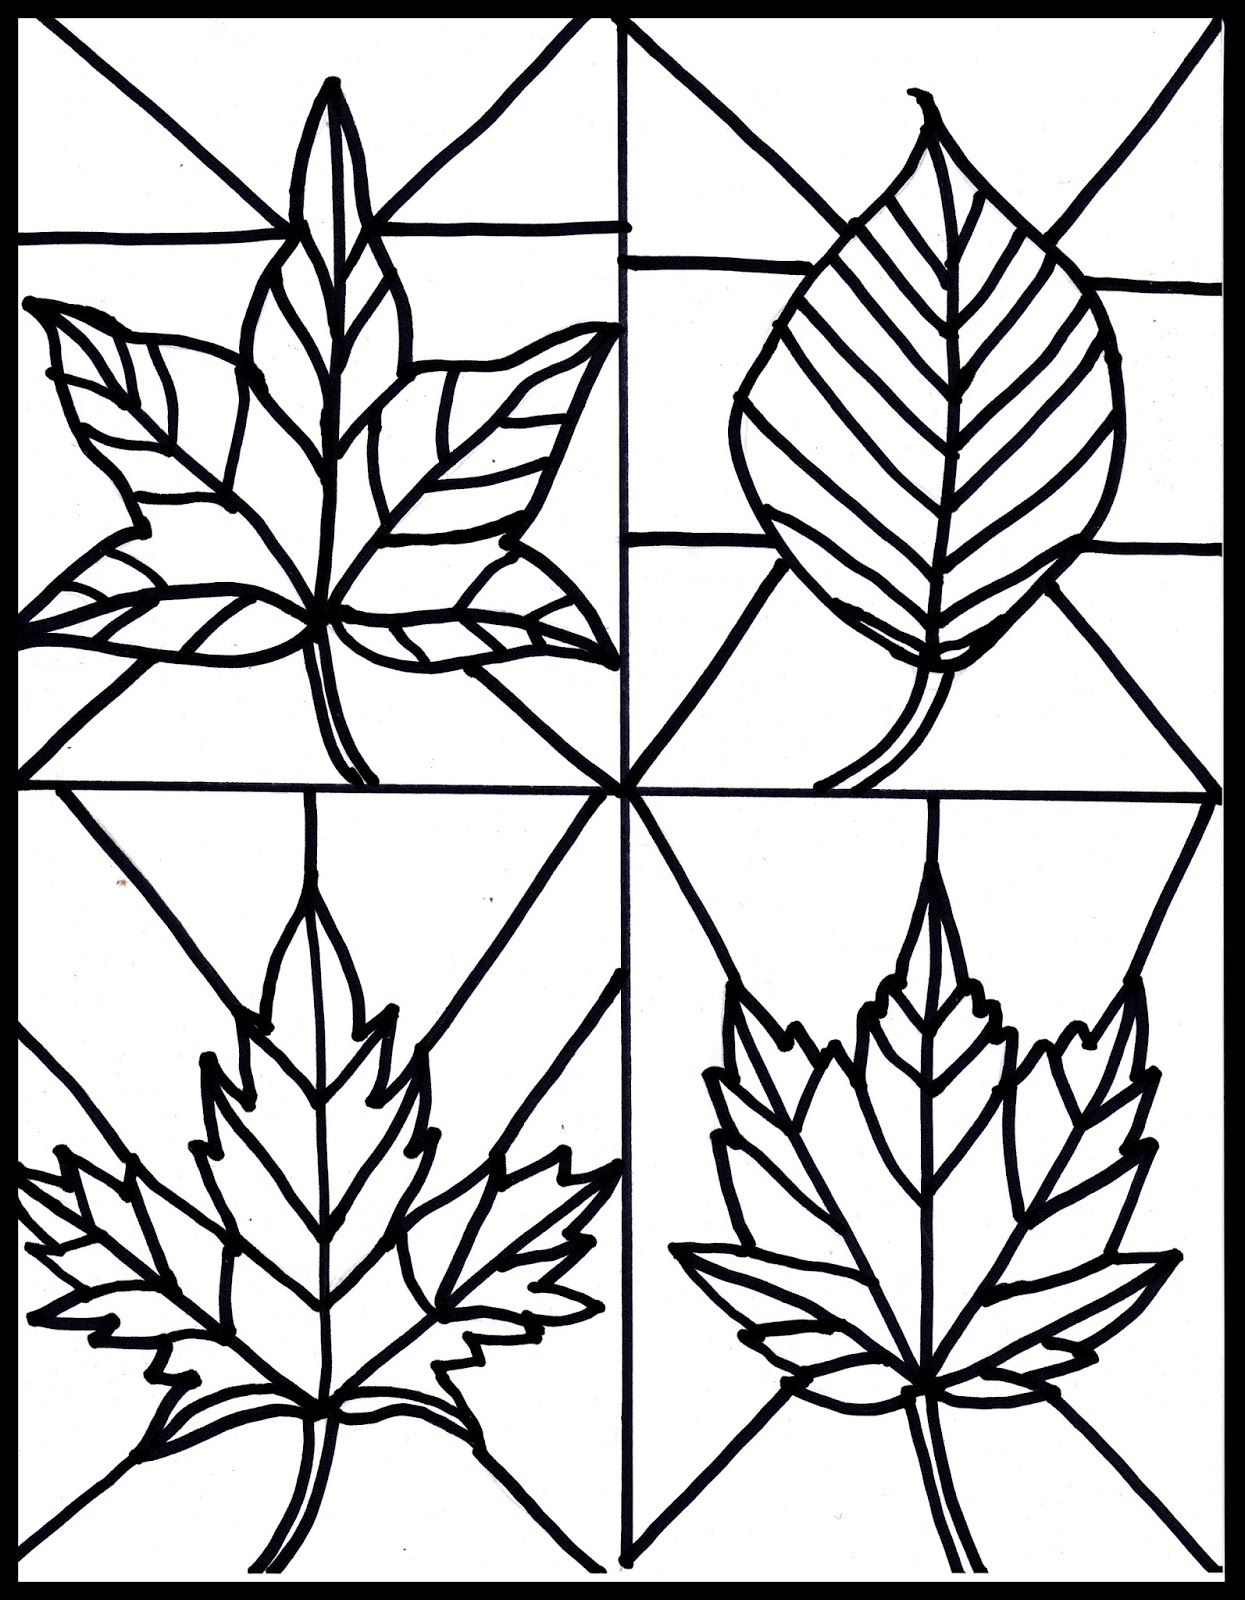 Free Fall Leaves Stained Glass Printable | Blogger Crafts We Love - Free Printable Stained Glass Patterns